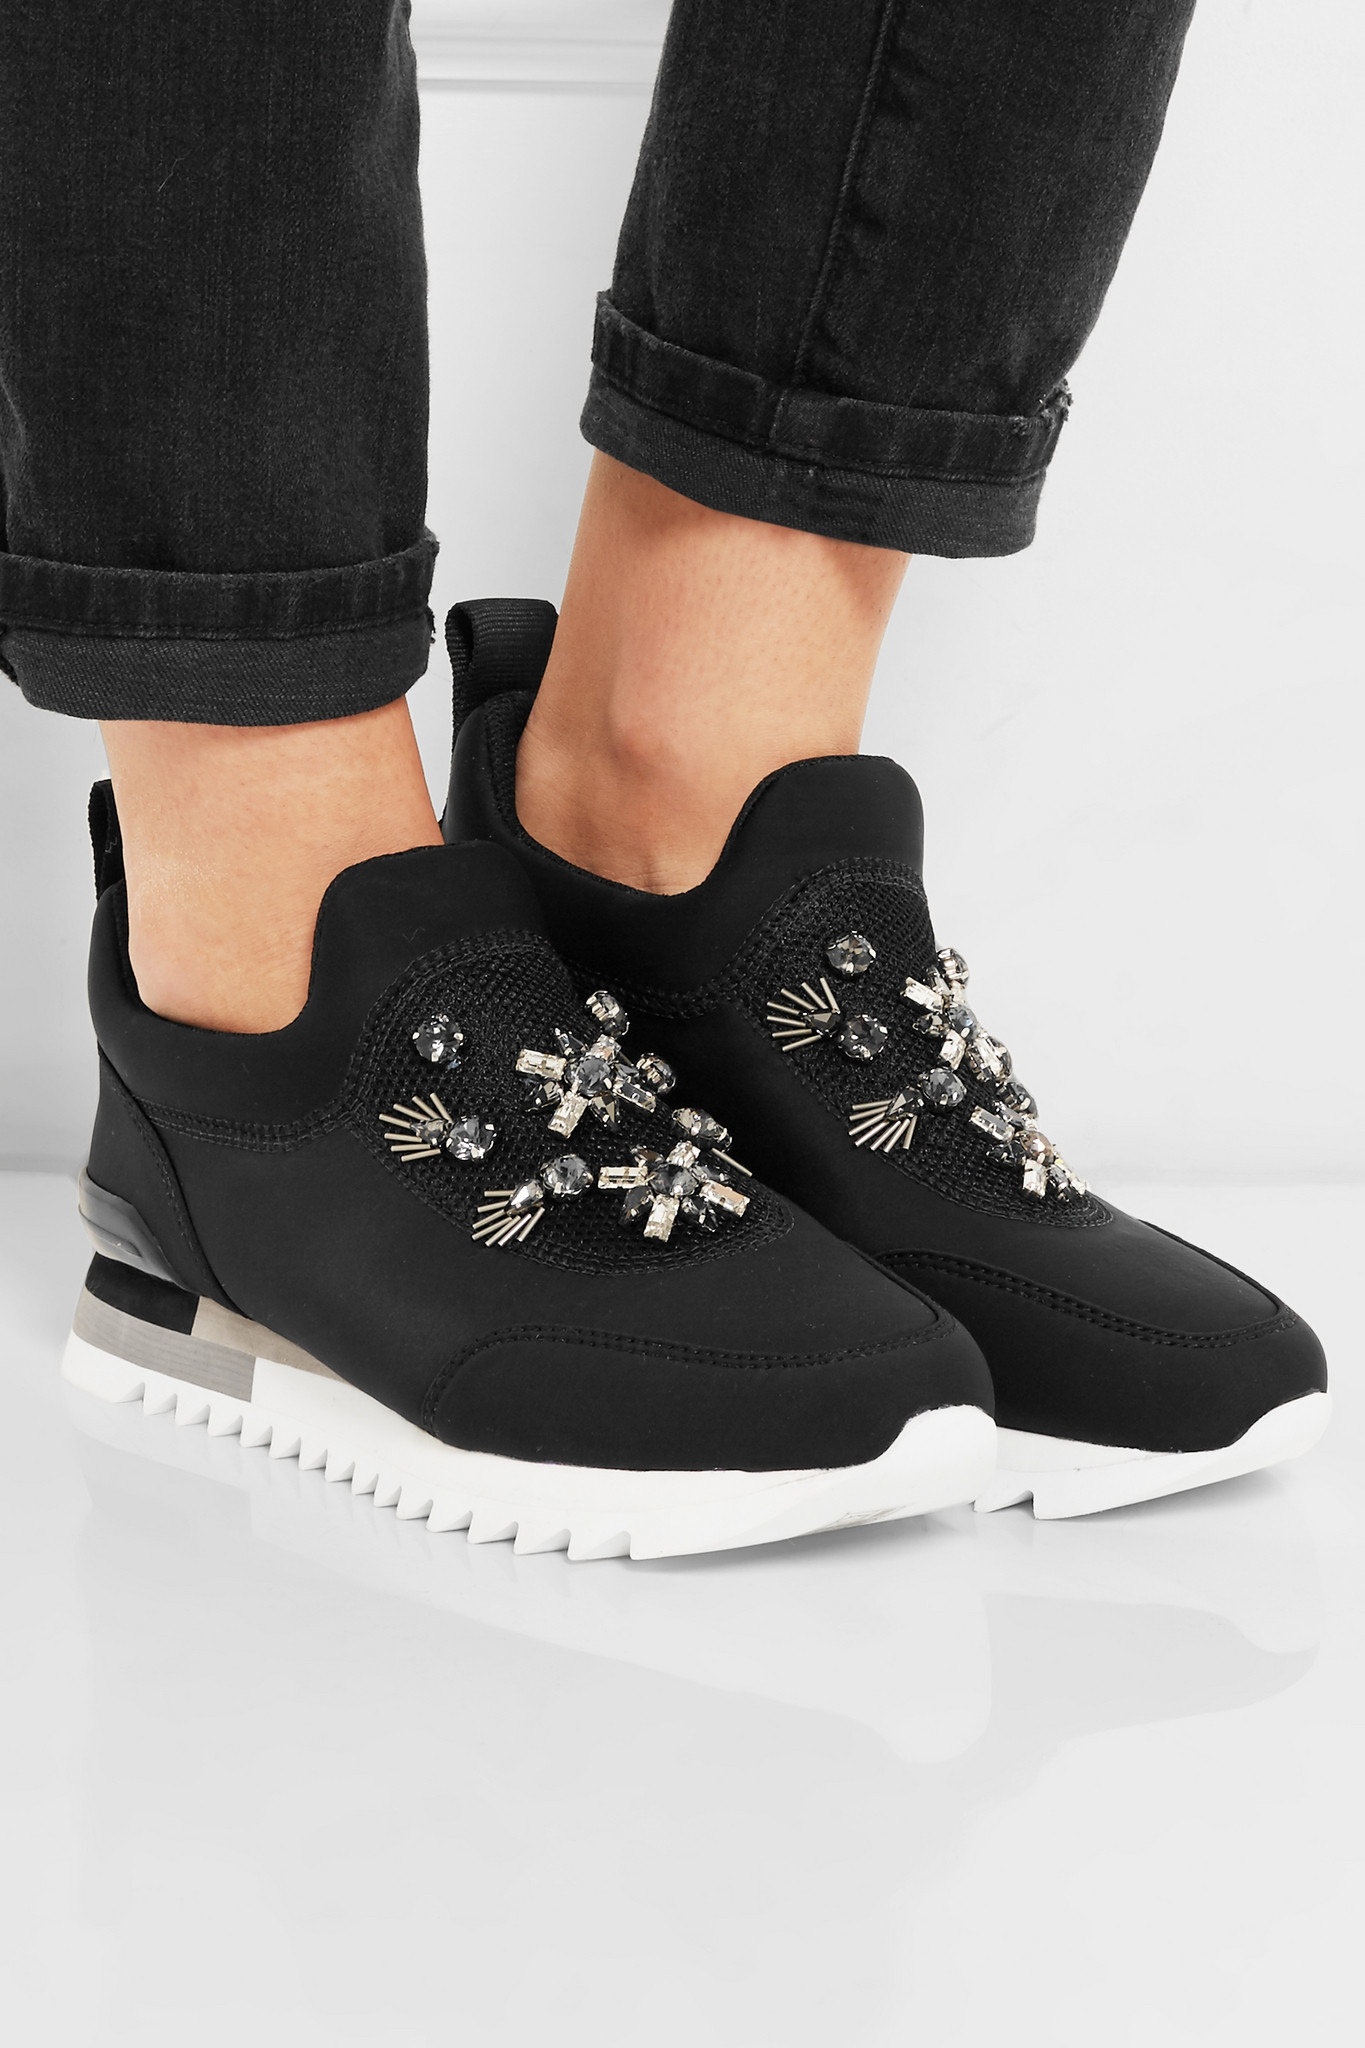 UGG Coupons, Deals, and Promo Codes - Rather-Be UGG Coupons, Deals, and Promo Codes UGG Australia has been selling luxurious sheepskin boots, slippers, and shoes since with an emphasis on fashion and comfort.